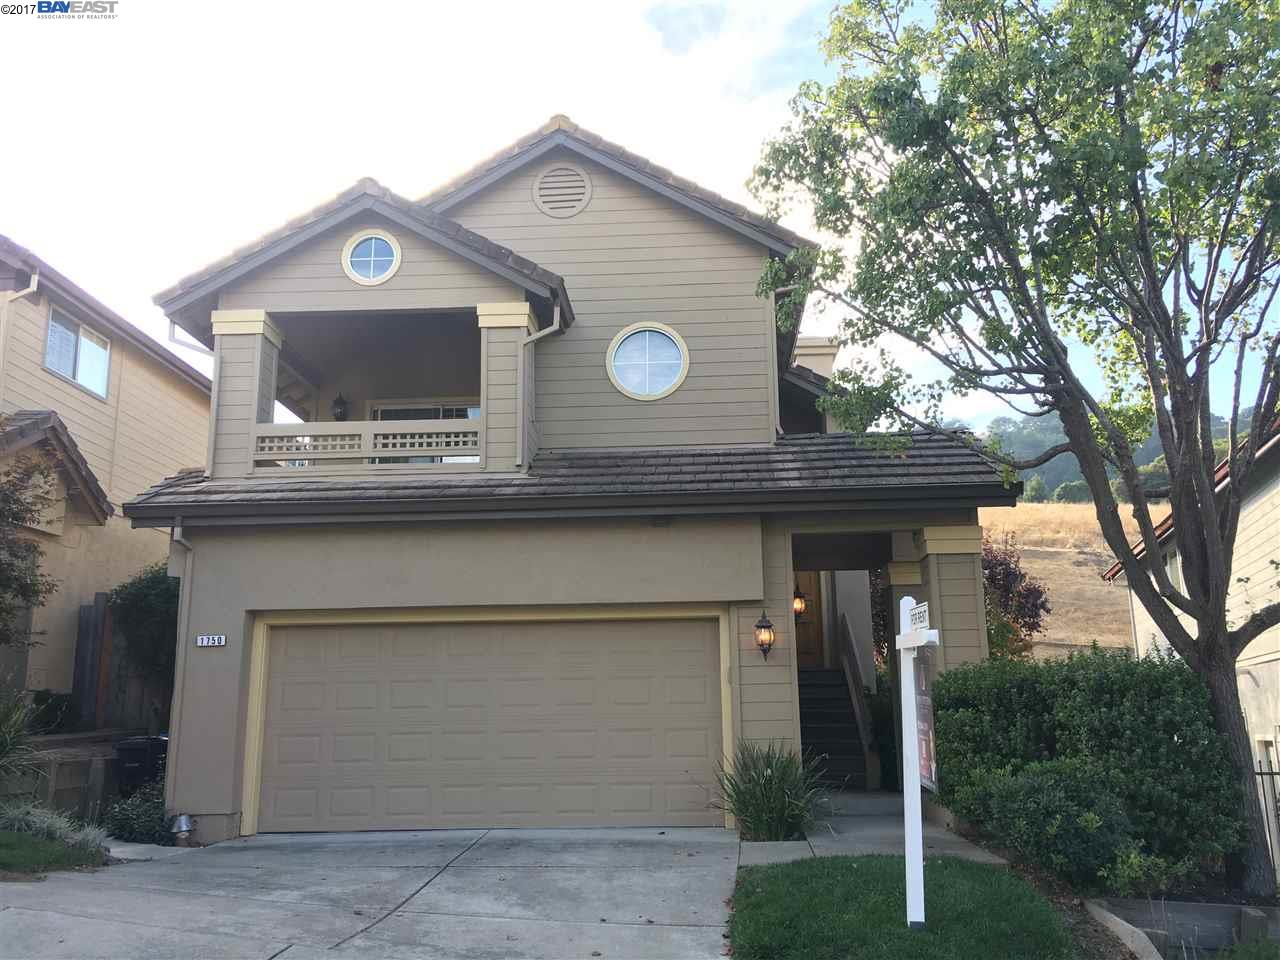 Single Family Home for Rent at 1750 Bird Hill Court 1750 Bird Hill Court Danville, California 94526 United States